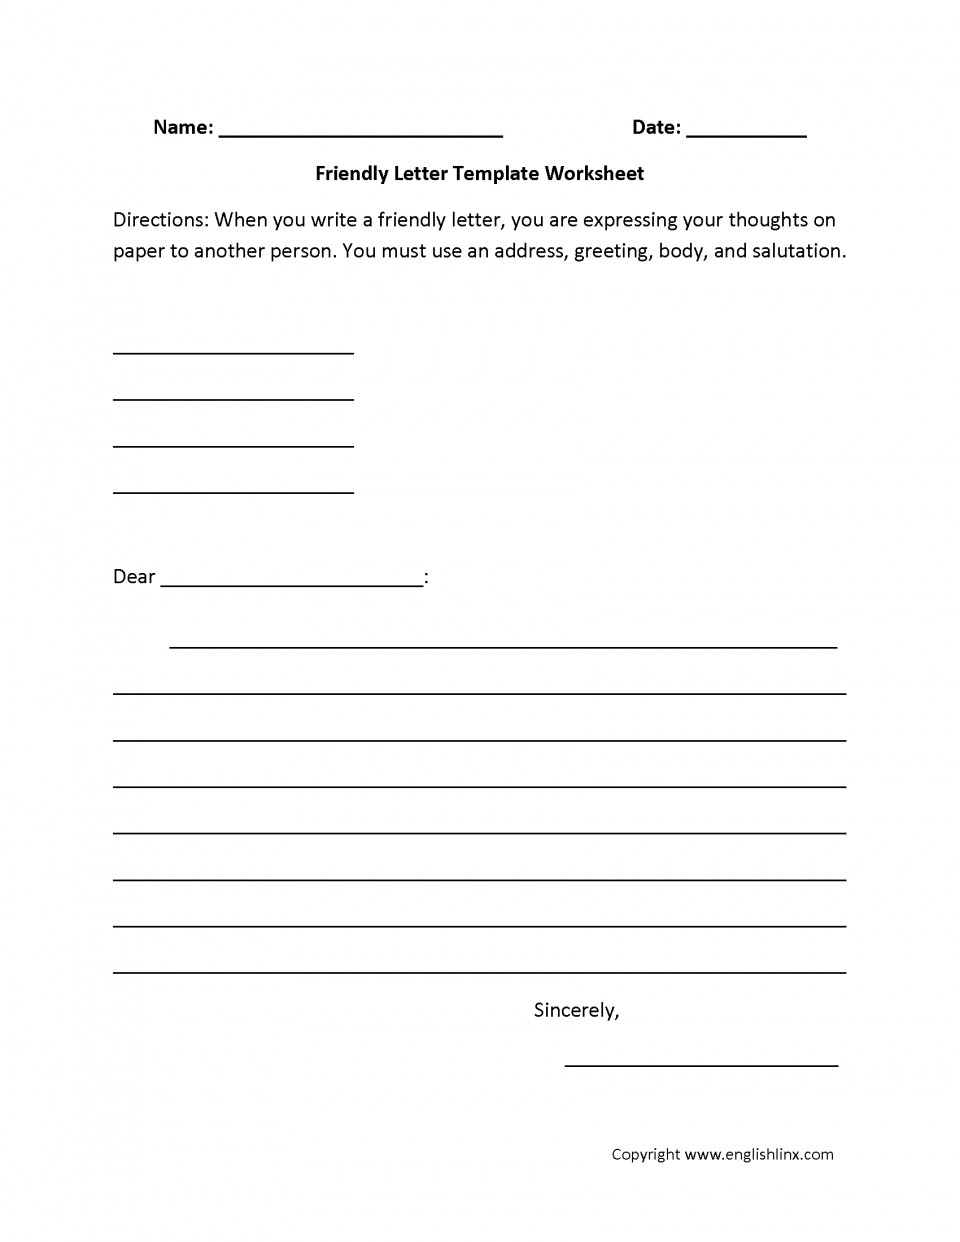 011 Essay Example About Friendly Stupendous On Eco Diwali In Hindi Environmentally Letter 960